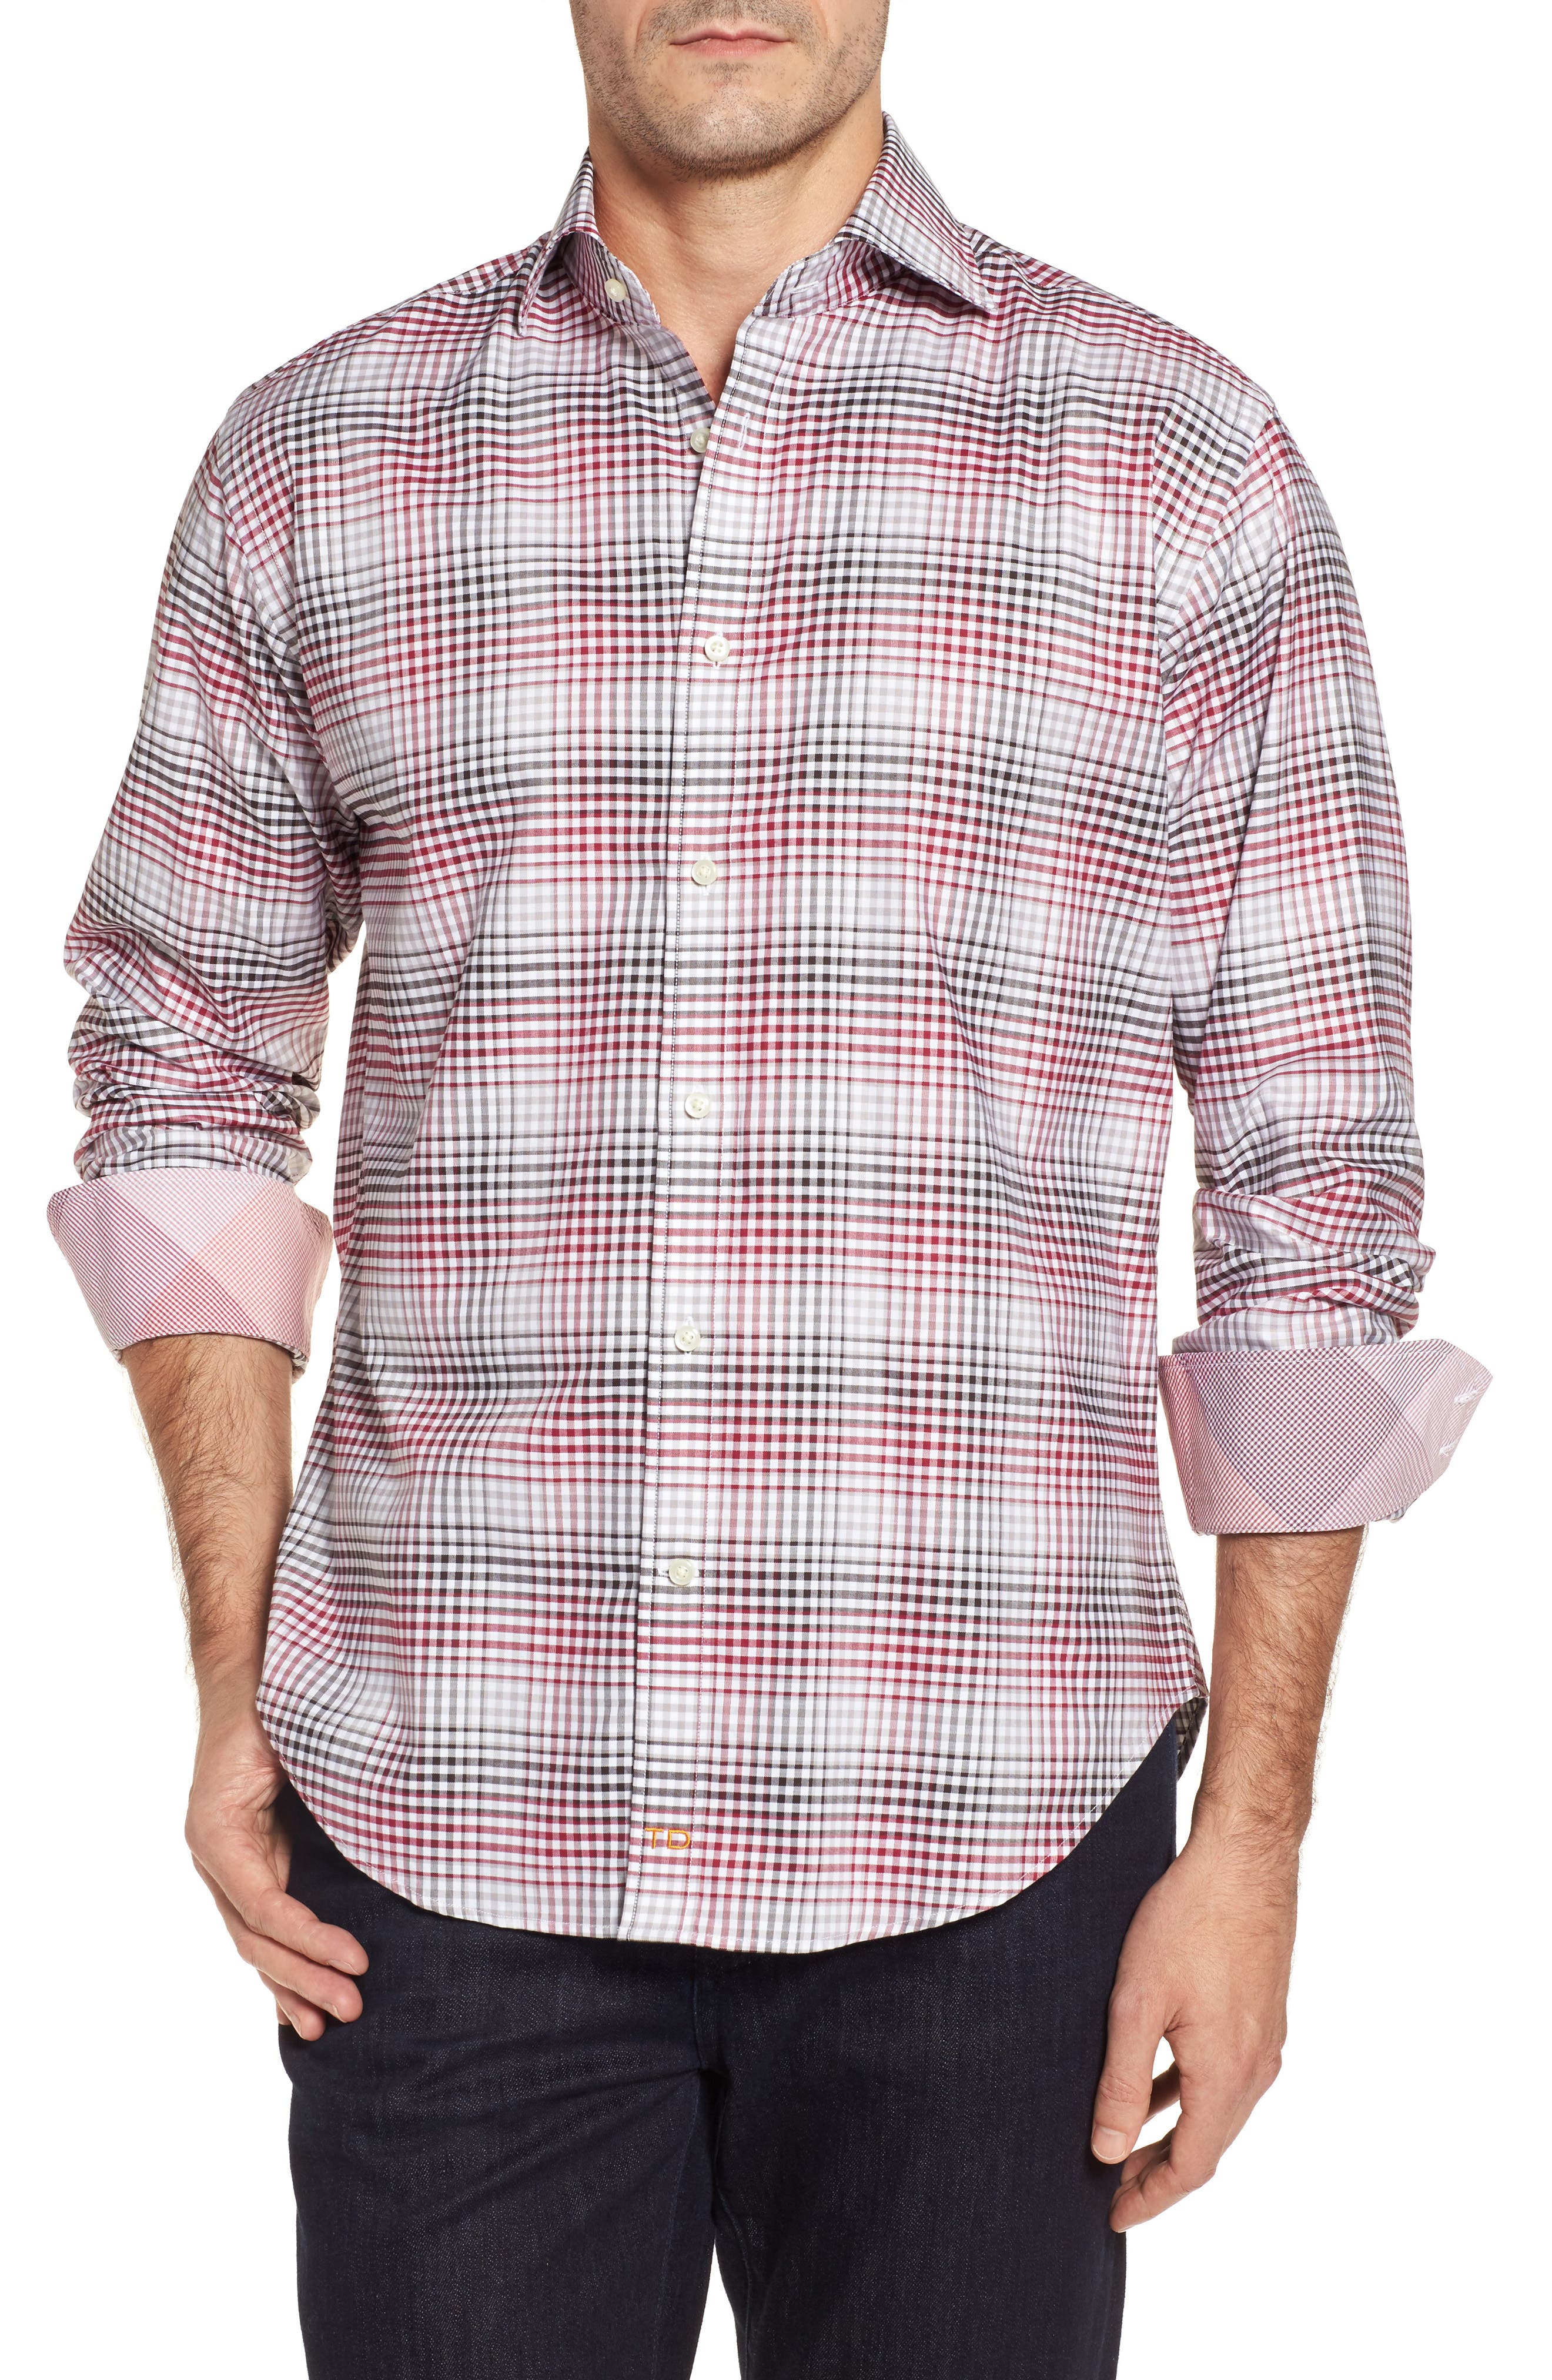 Regular Fit Check Sport Shirt,                         Main,                         color,